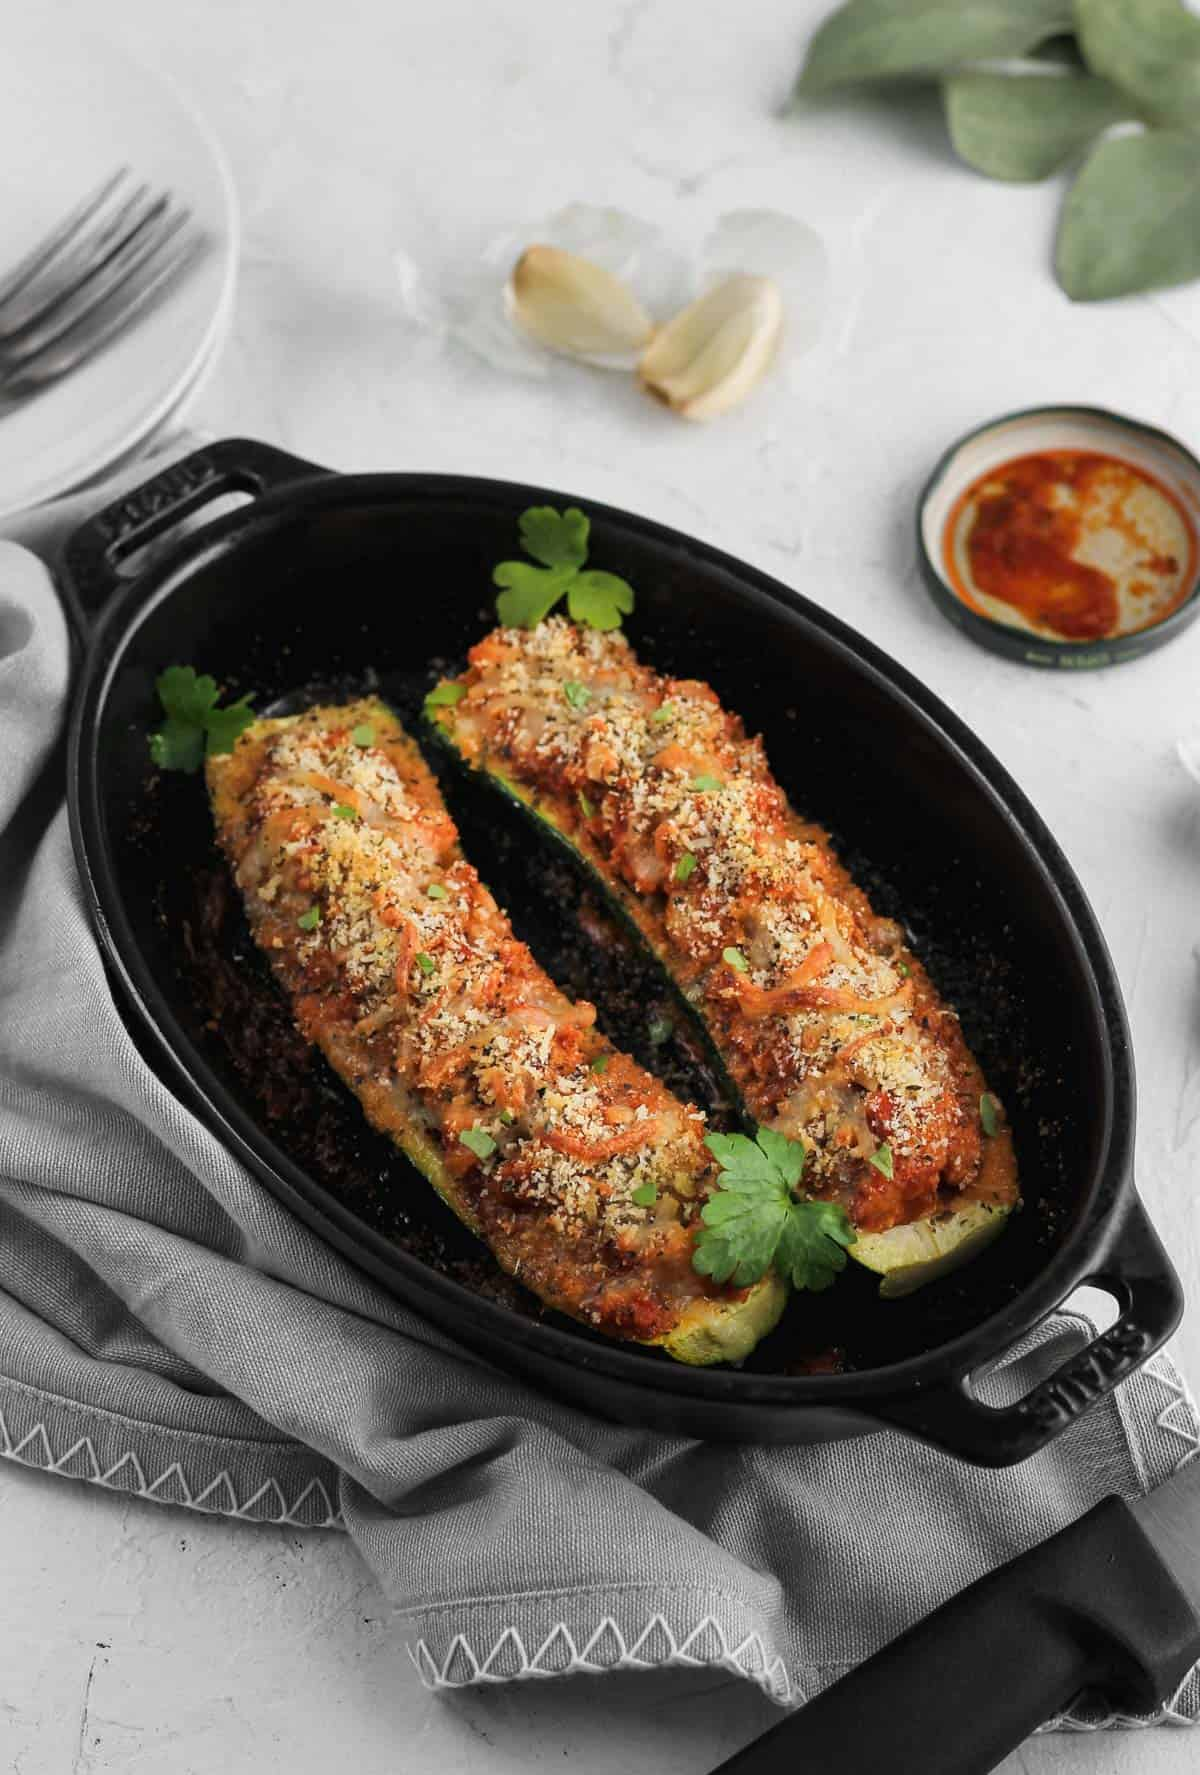 Stuffed zucchini in a black baking dish with a gray napkin and garlic cloves off to the side.